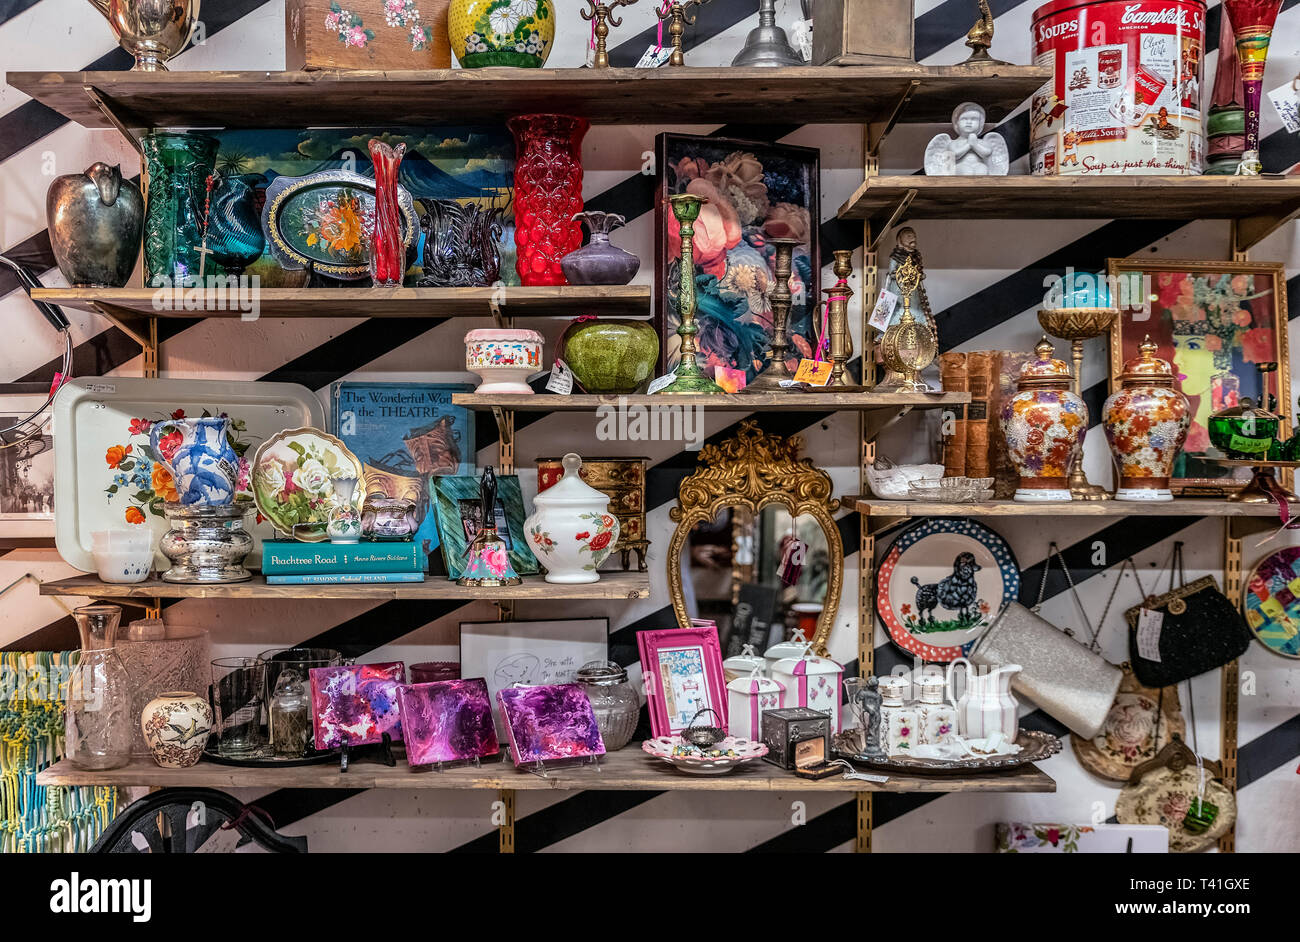 Antique collectibles on display in an antique store. - Stock Image